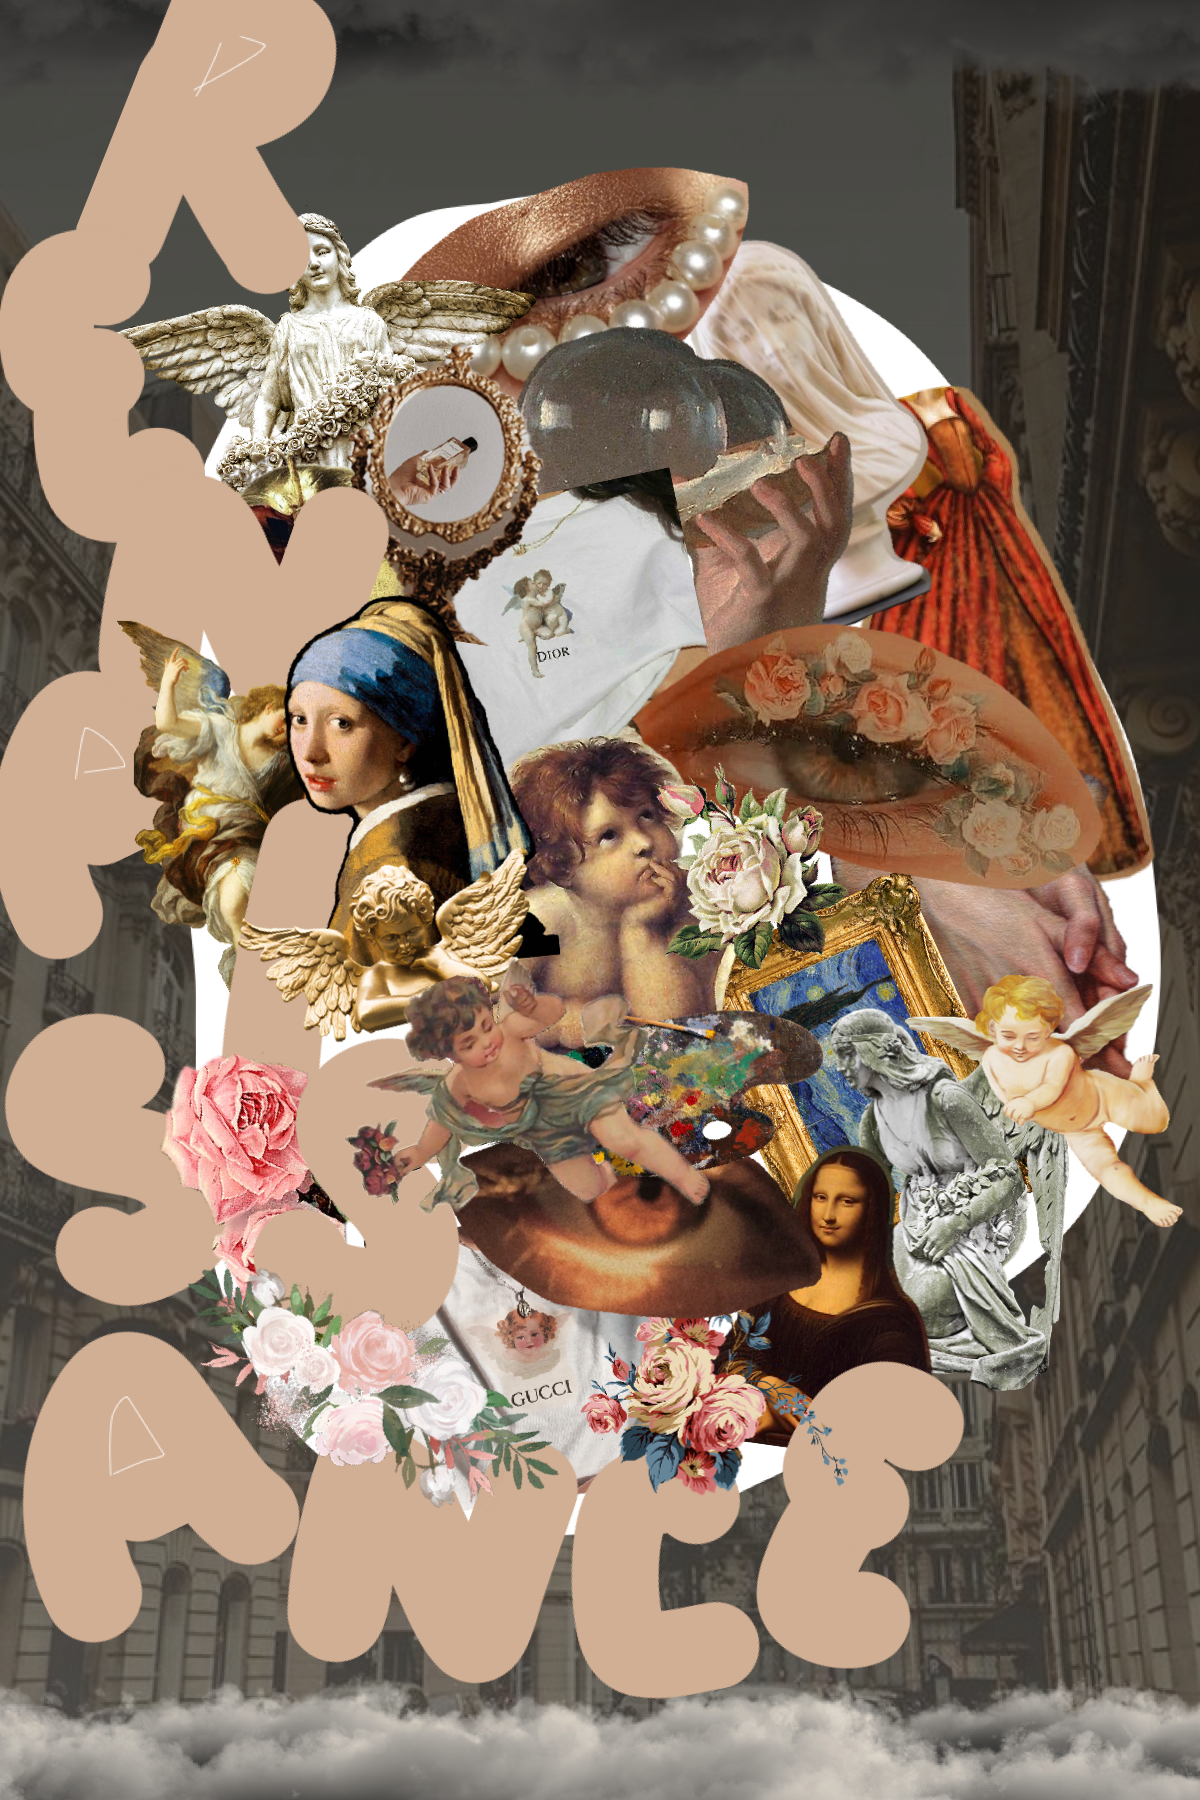 — r e n a i s s a n c e — i got a random burst of inspo and made this. not really sure how i feel about it😳 anyways, the renaissance was really such a beautiful period of history :).